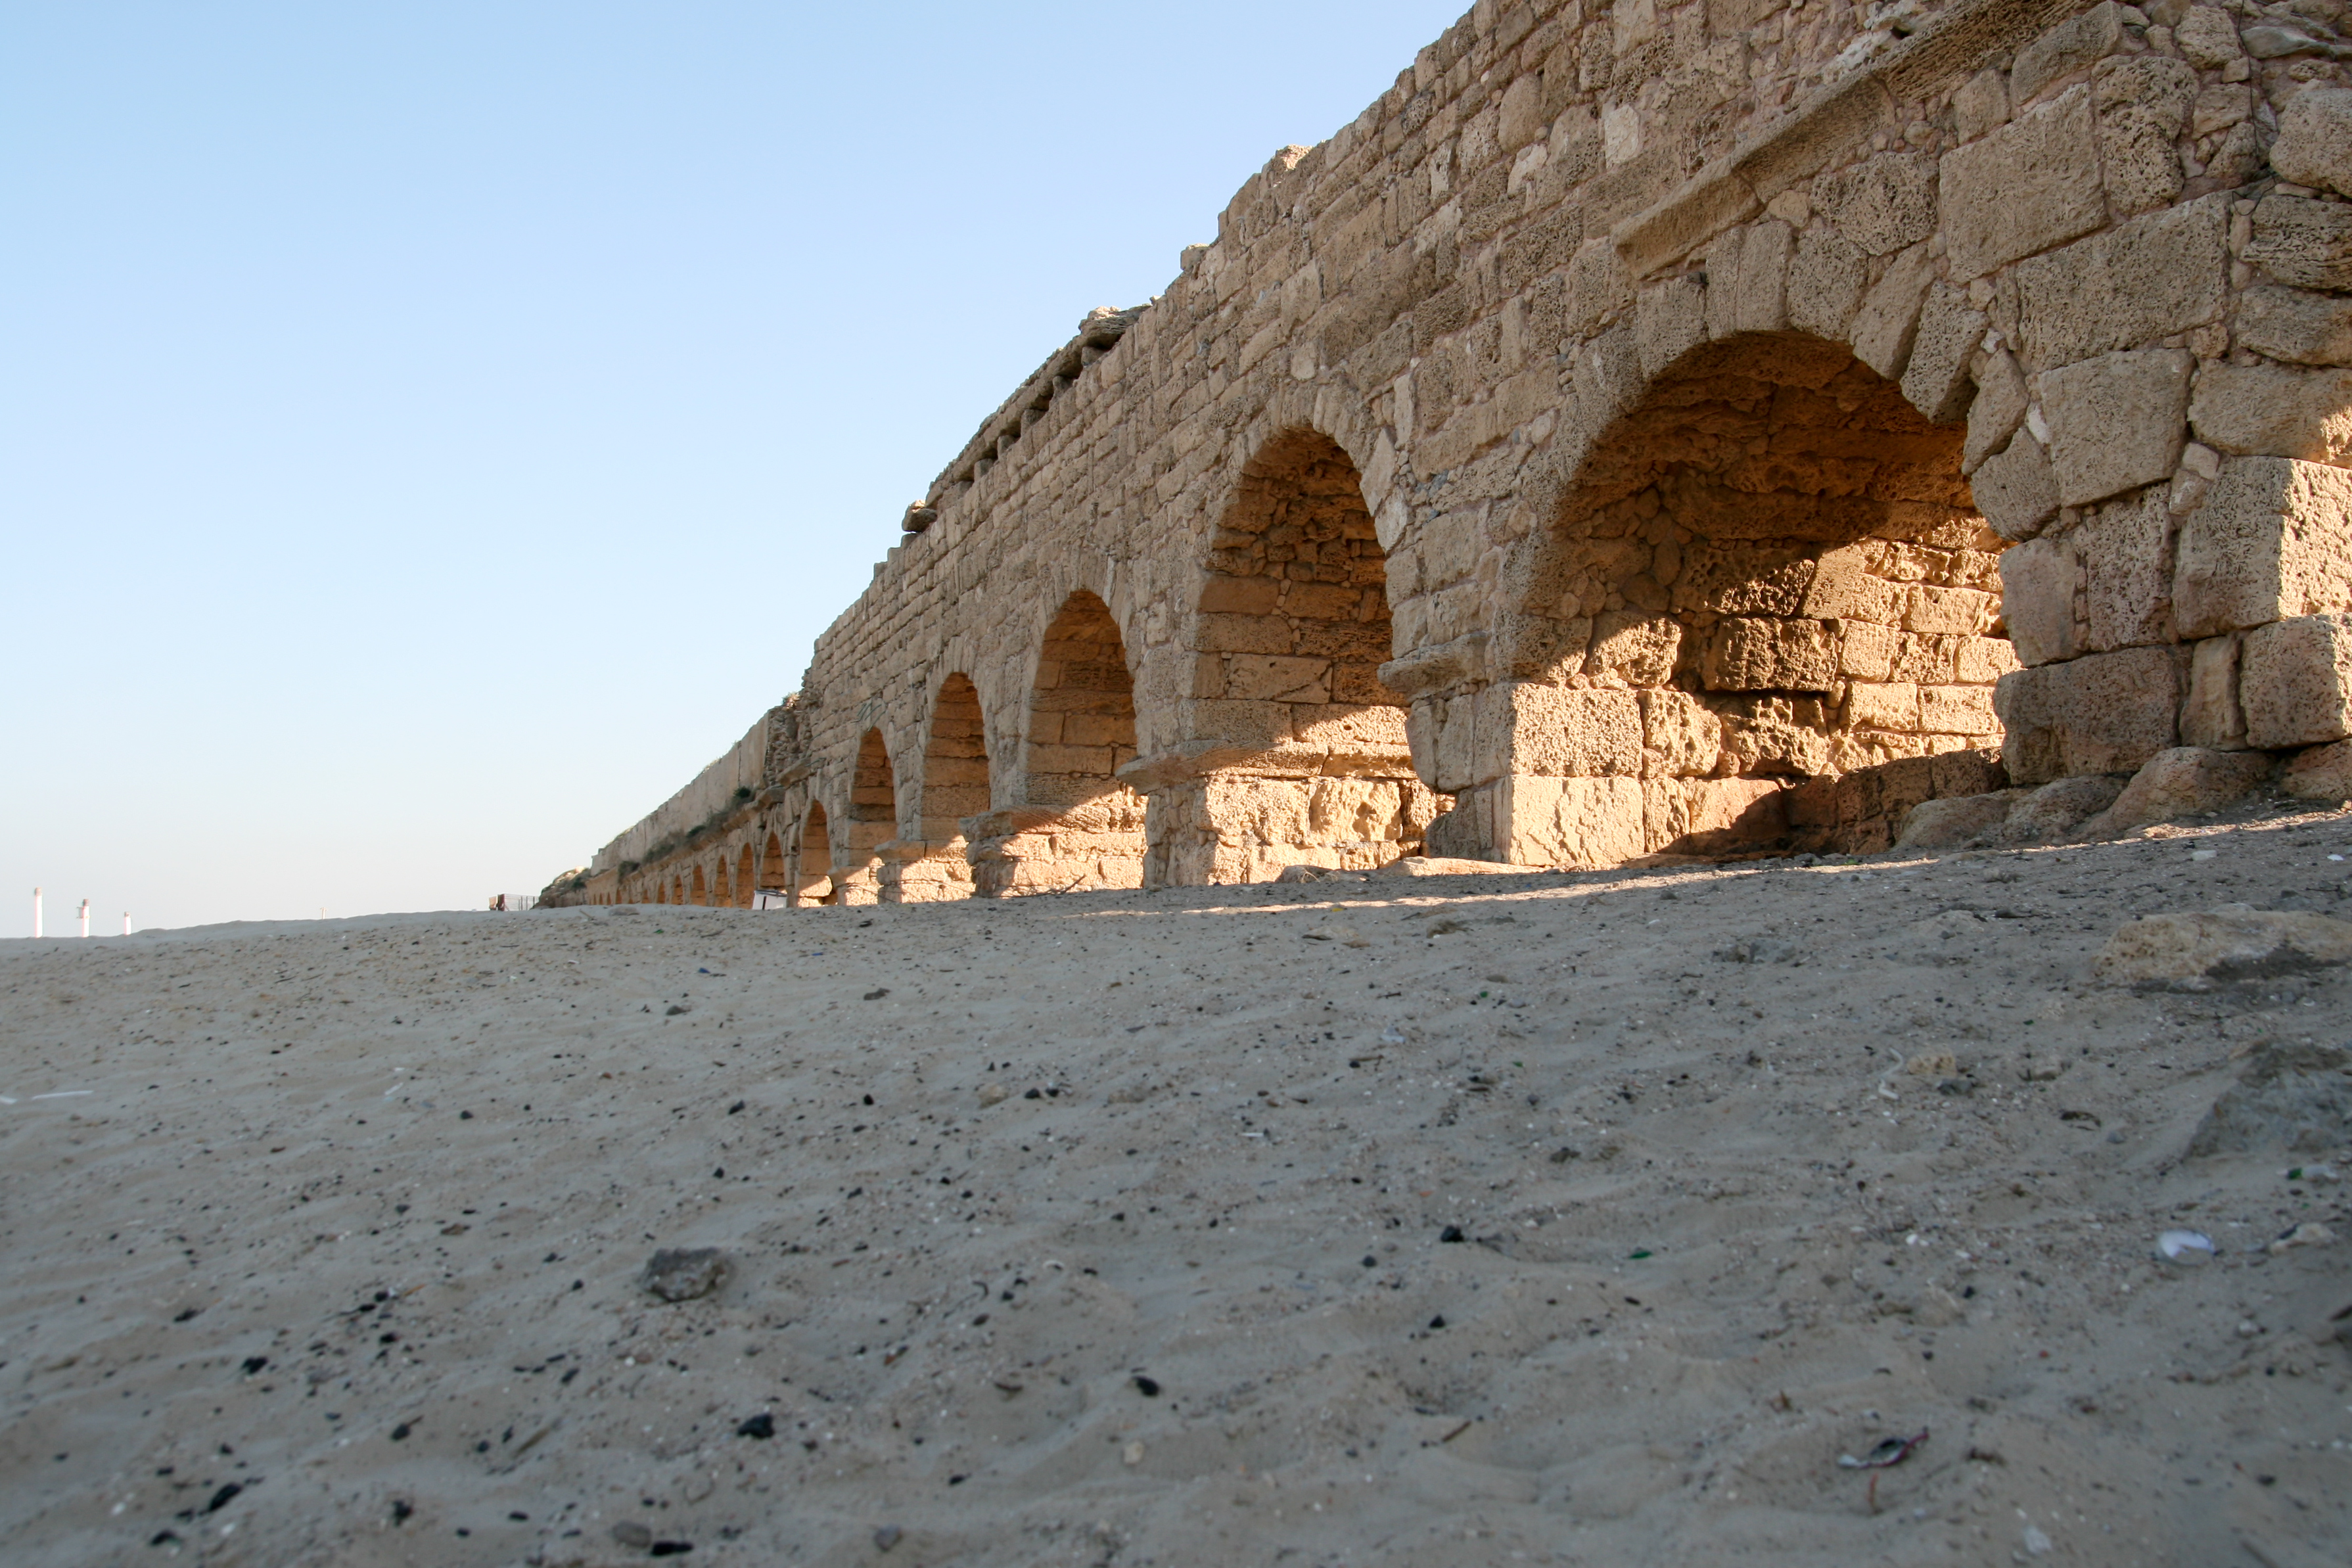 Roman aqueduct in Caesarea Maritima (source: Wikimedia Commons)